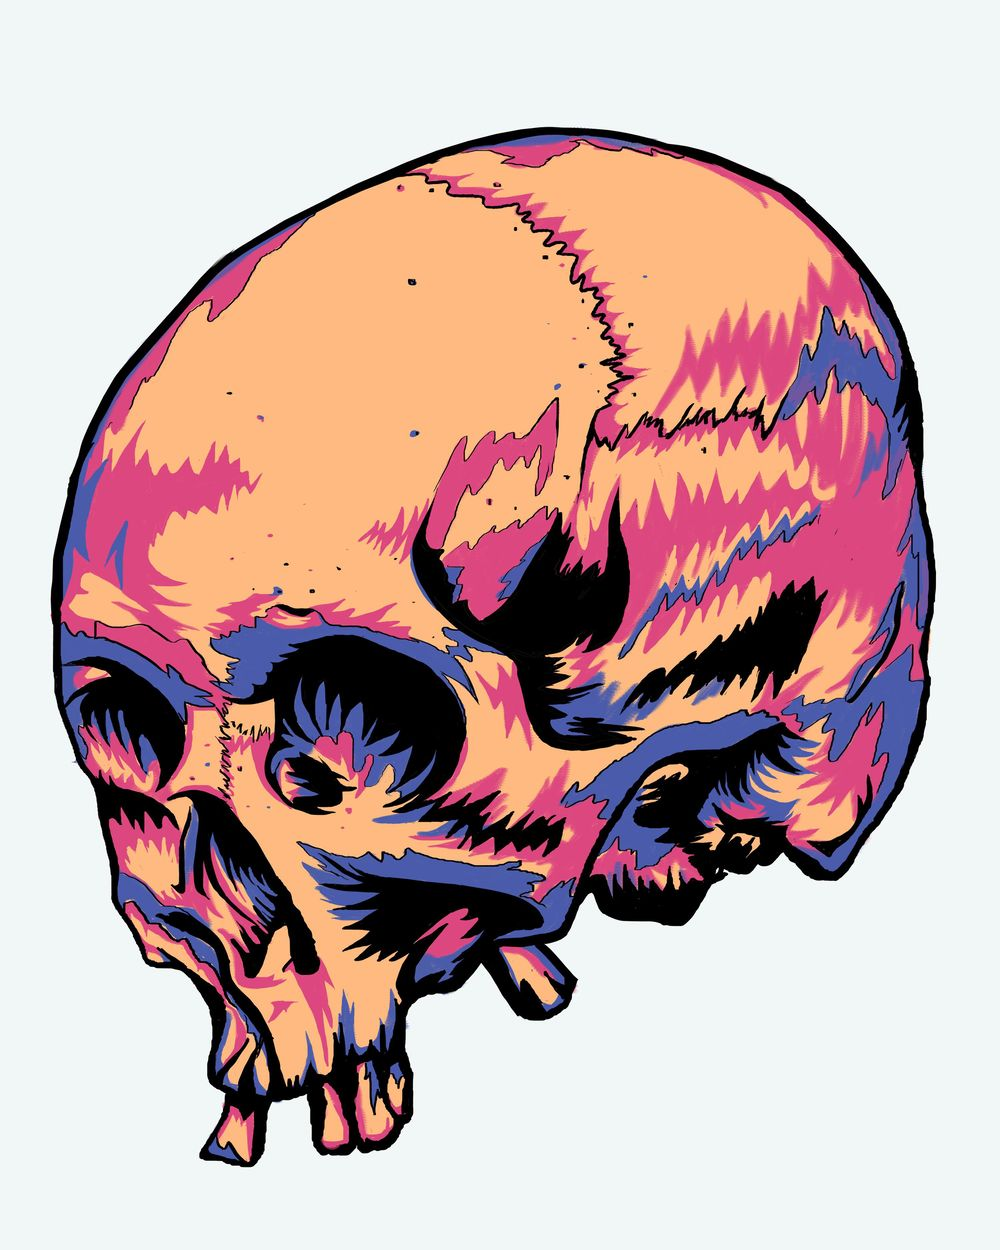 Skullchedelic - image 2 - student project